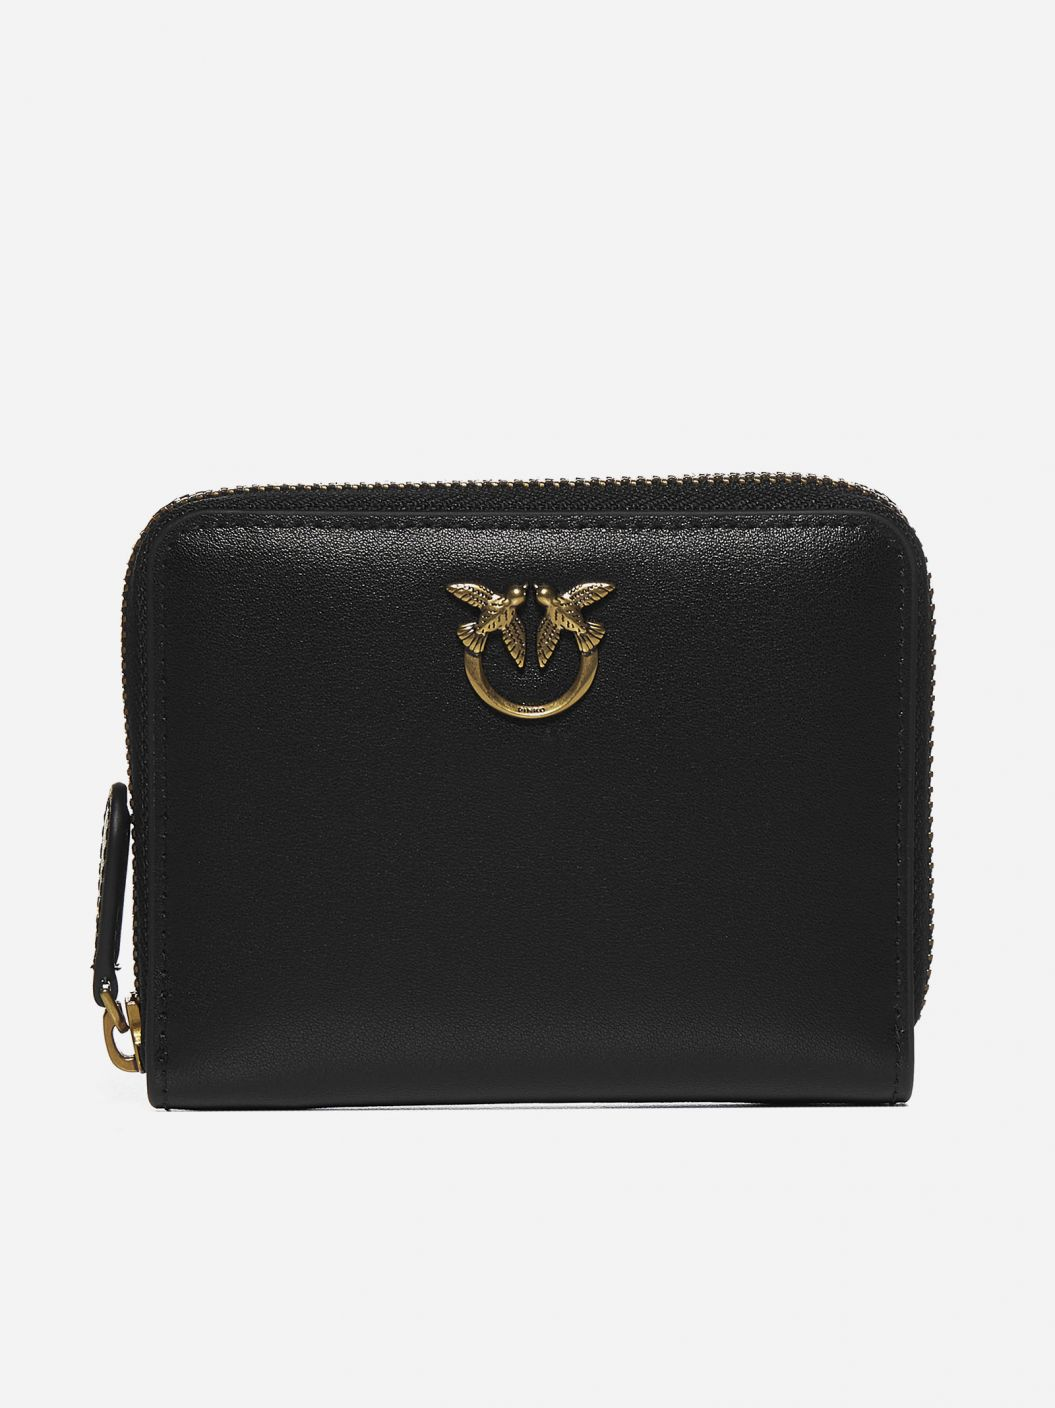 Taylor Simply leather wallet